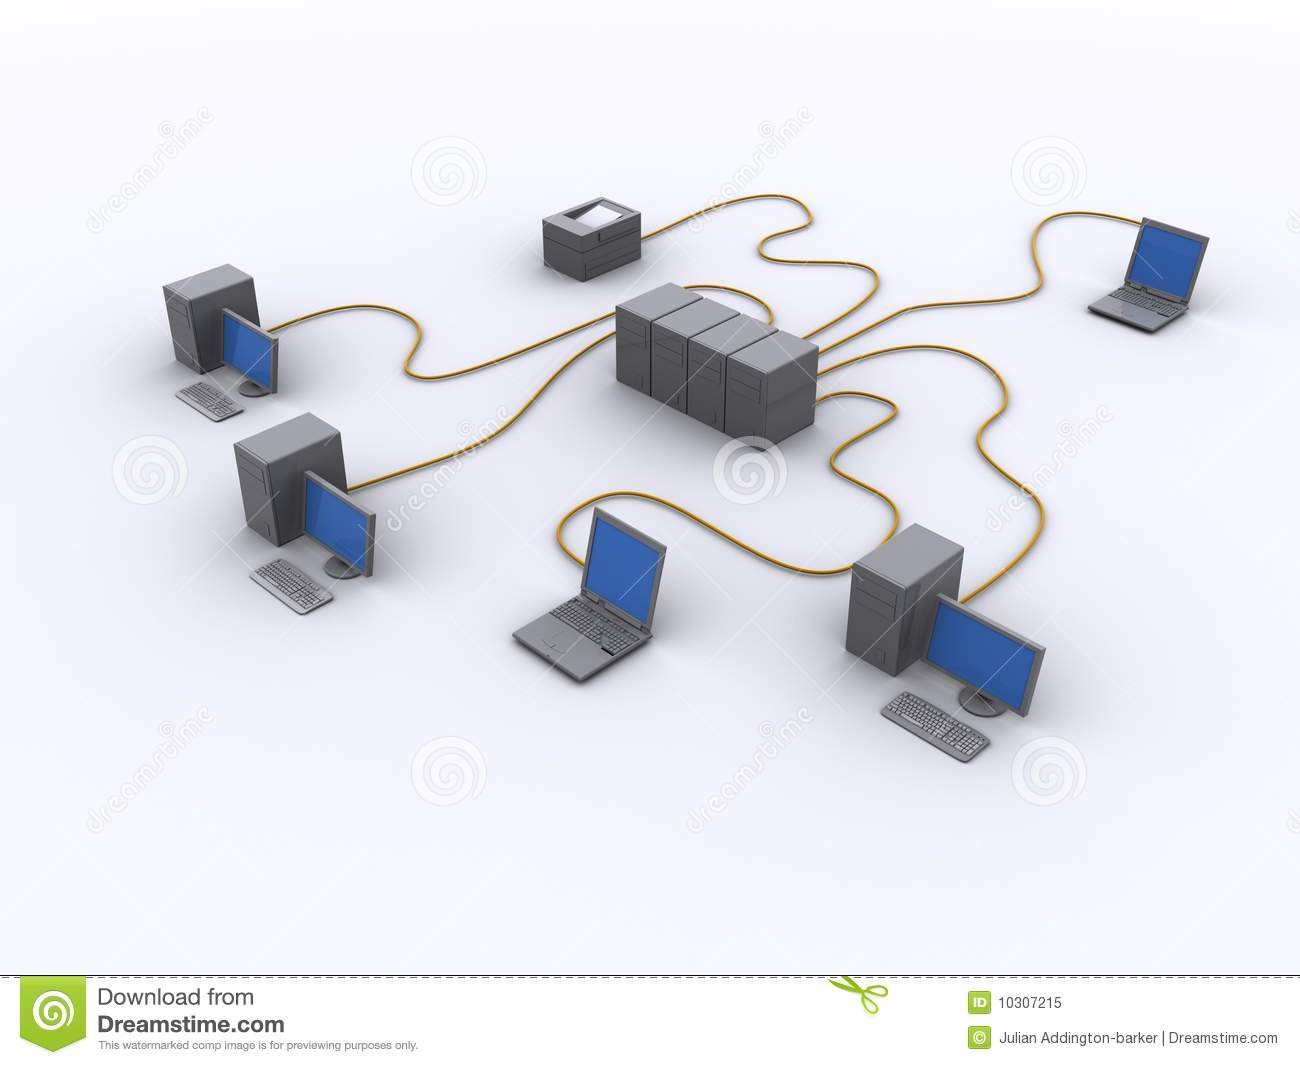 Networking Wiring Diagram 25 Images New Home Network Design Wired Royalty Free Stock Photo Image 10307215